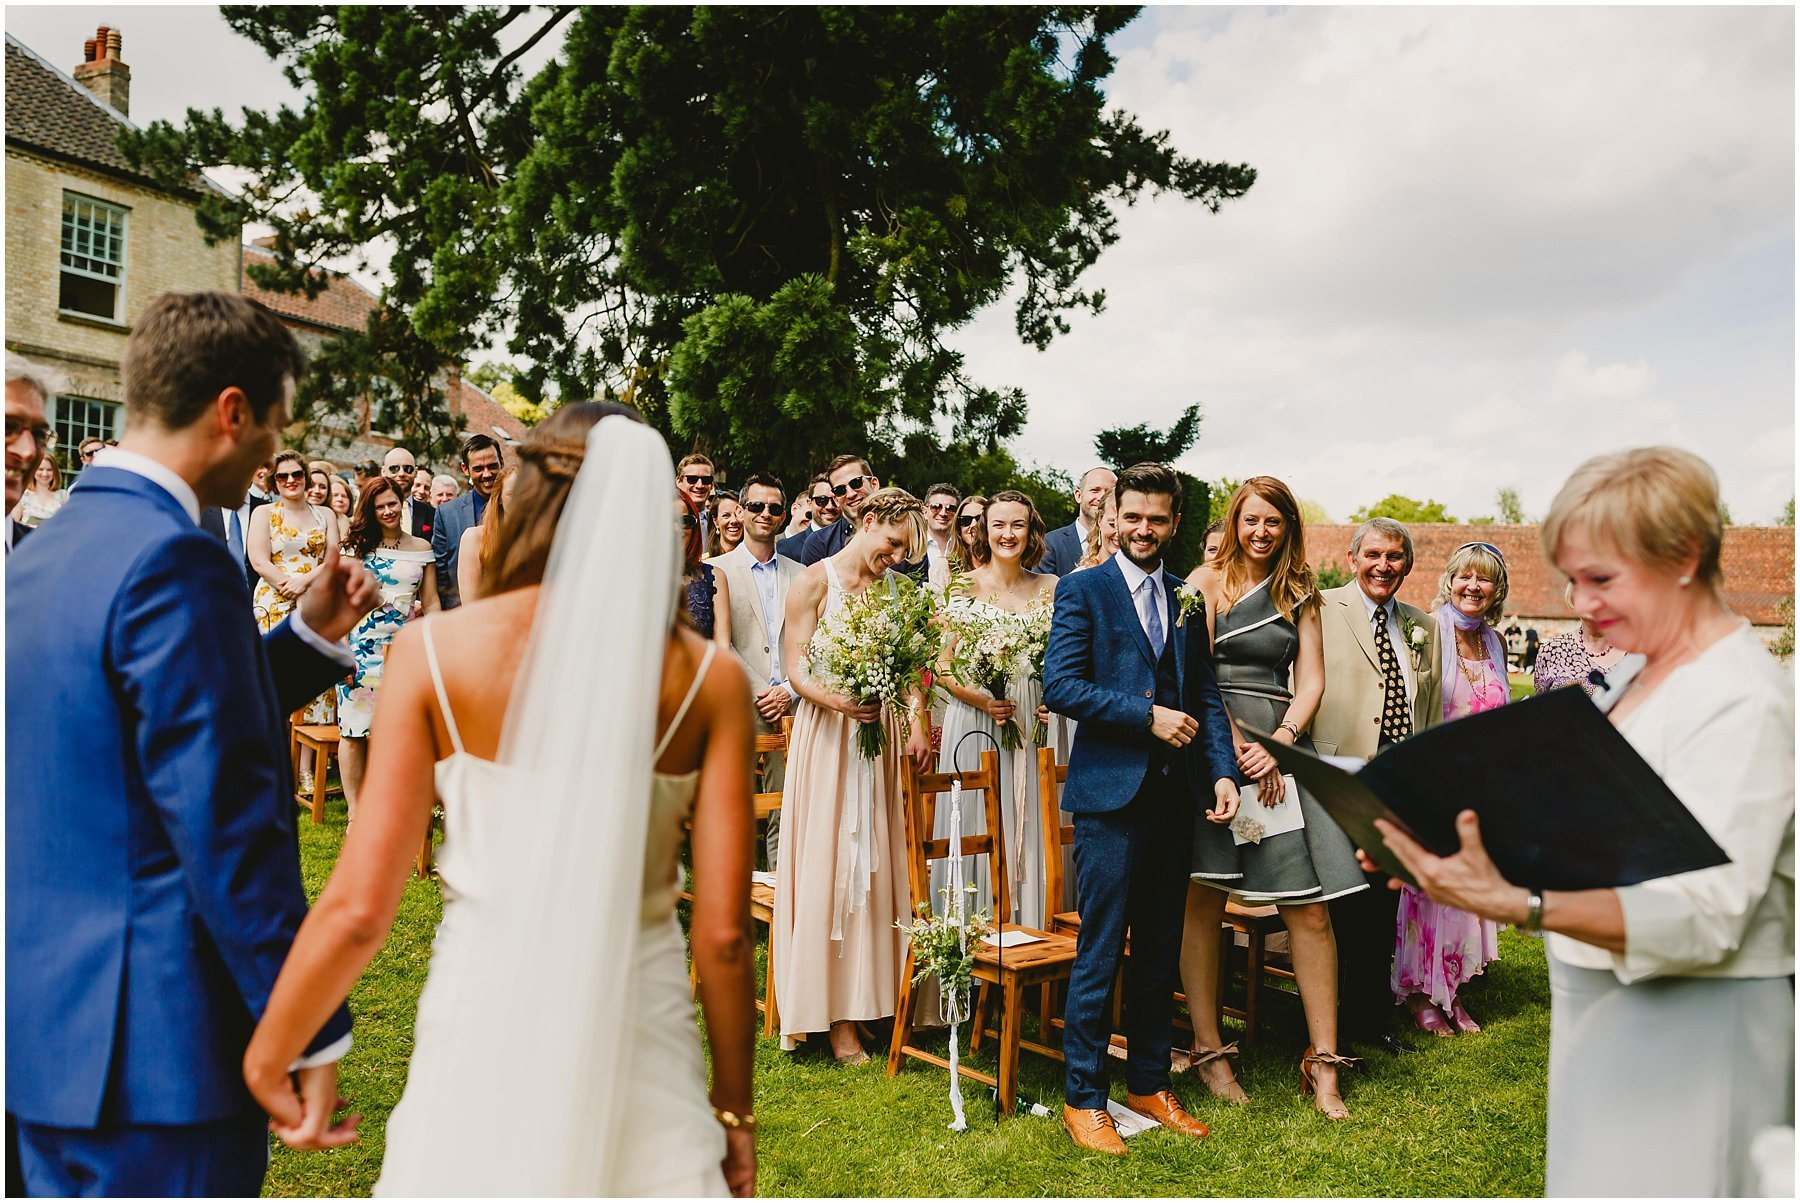 Andy Davison - West Lexham Manor Wedding Photographer